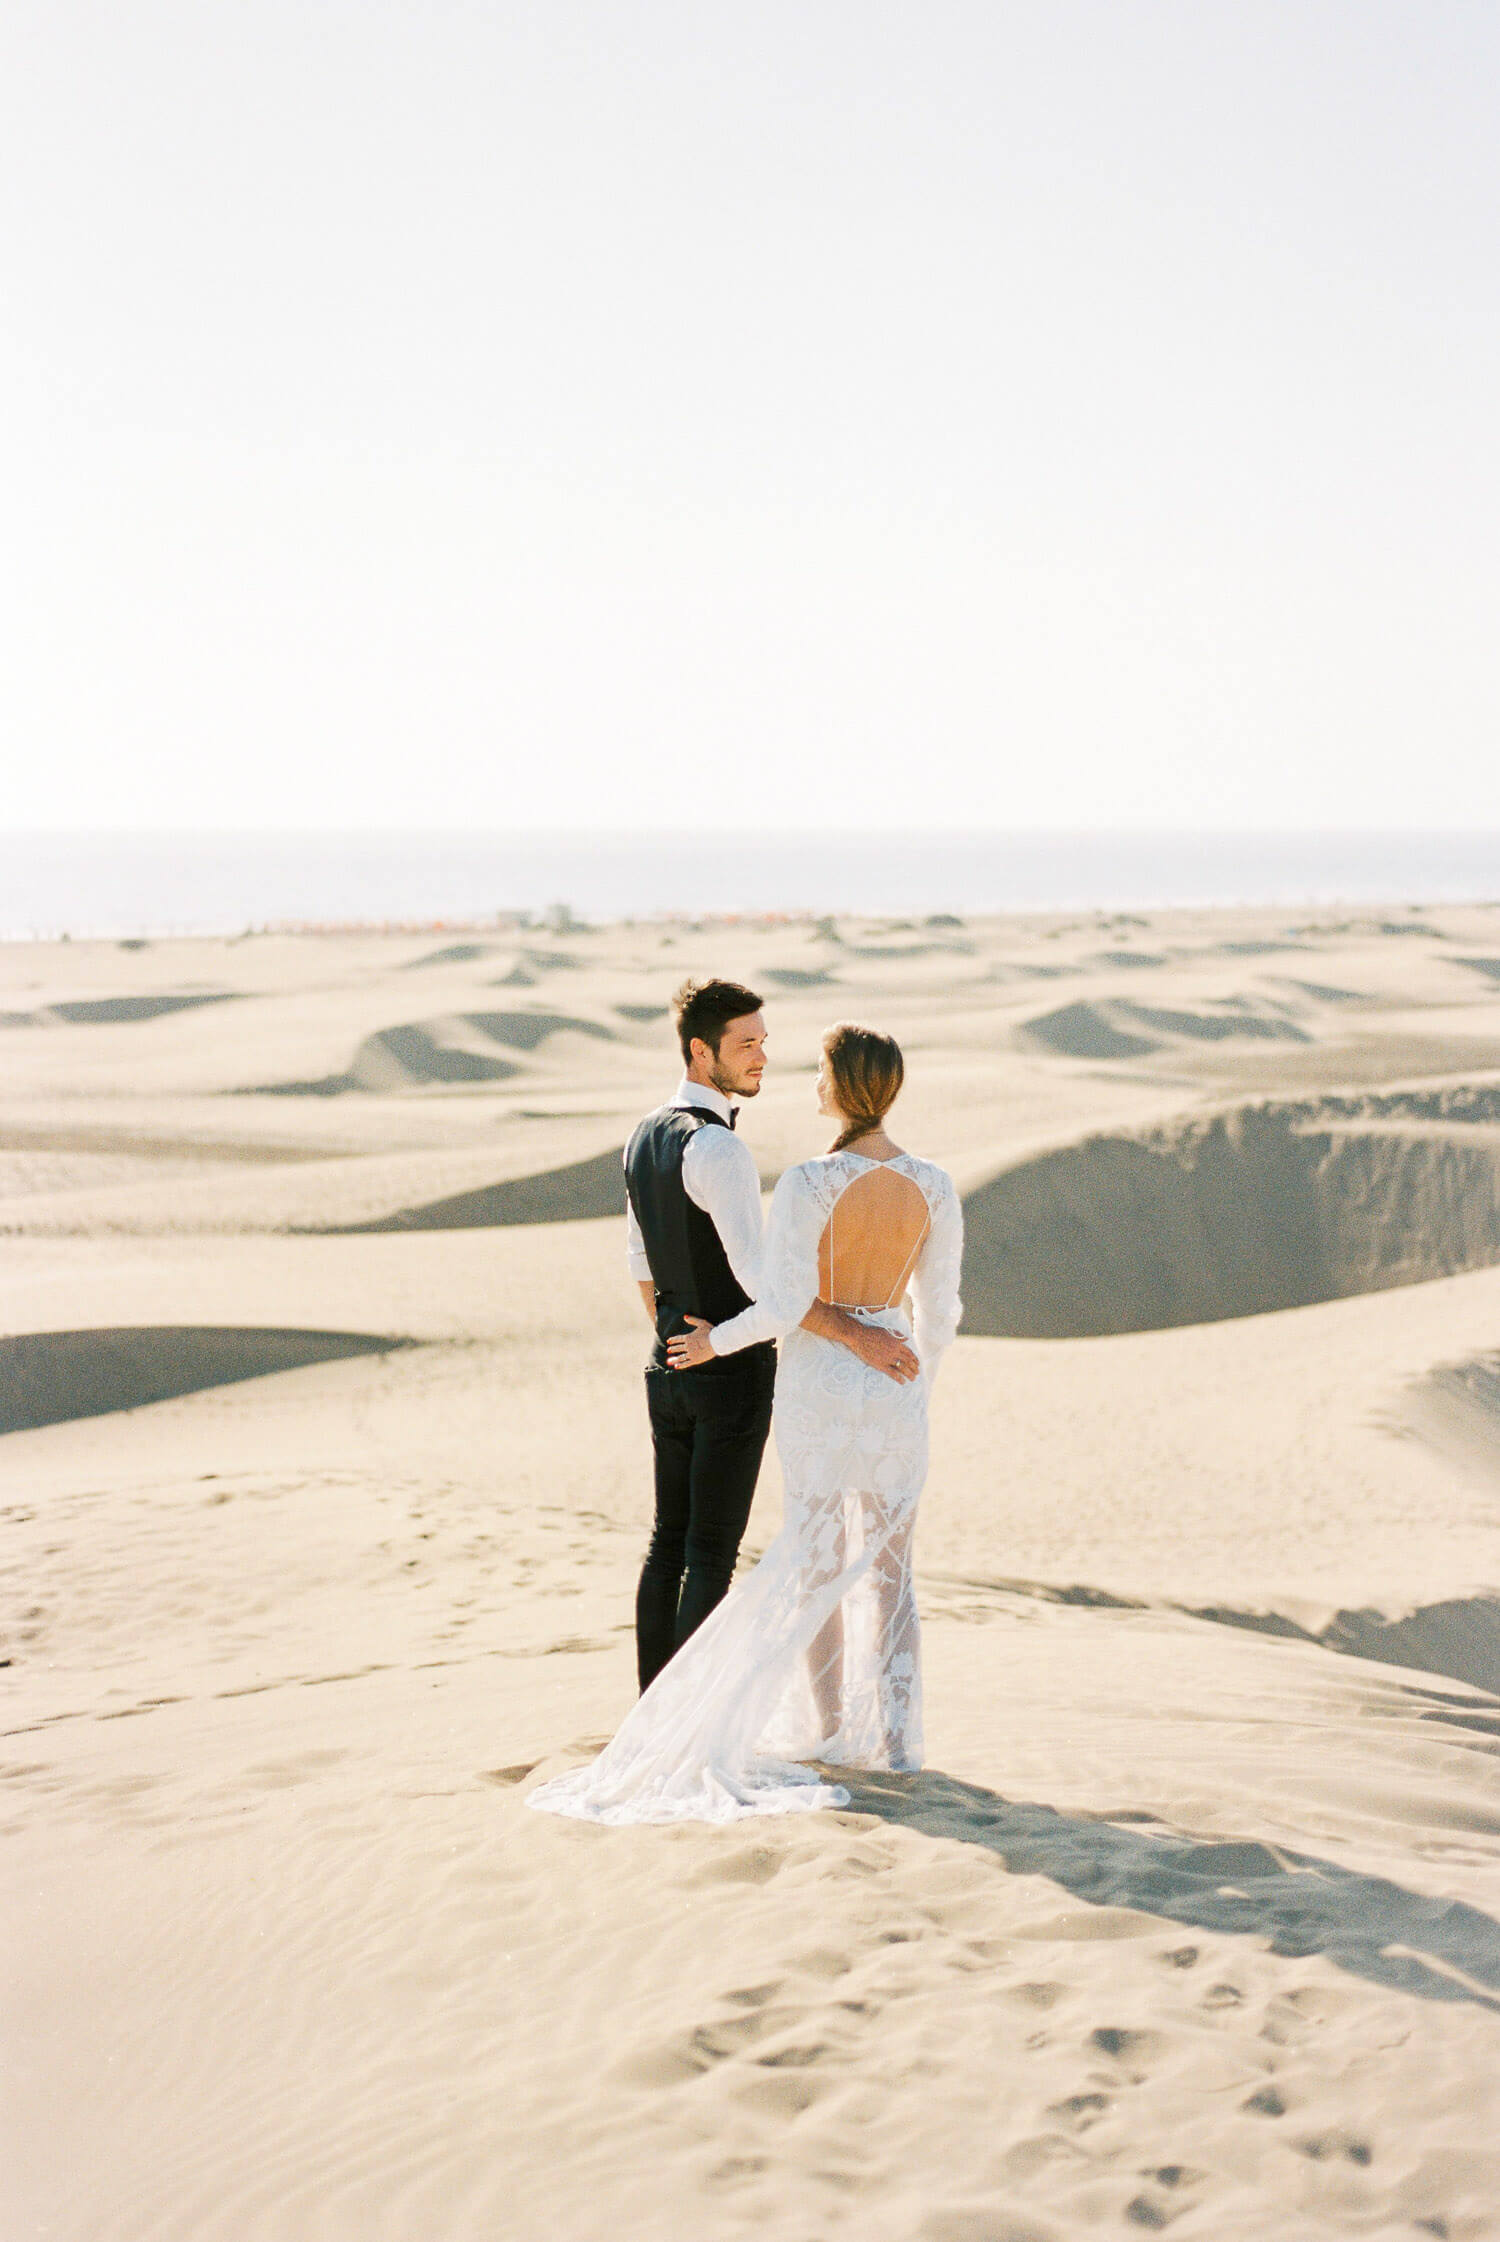 elopement in Canary islands